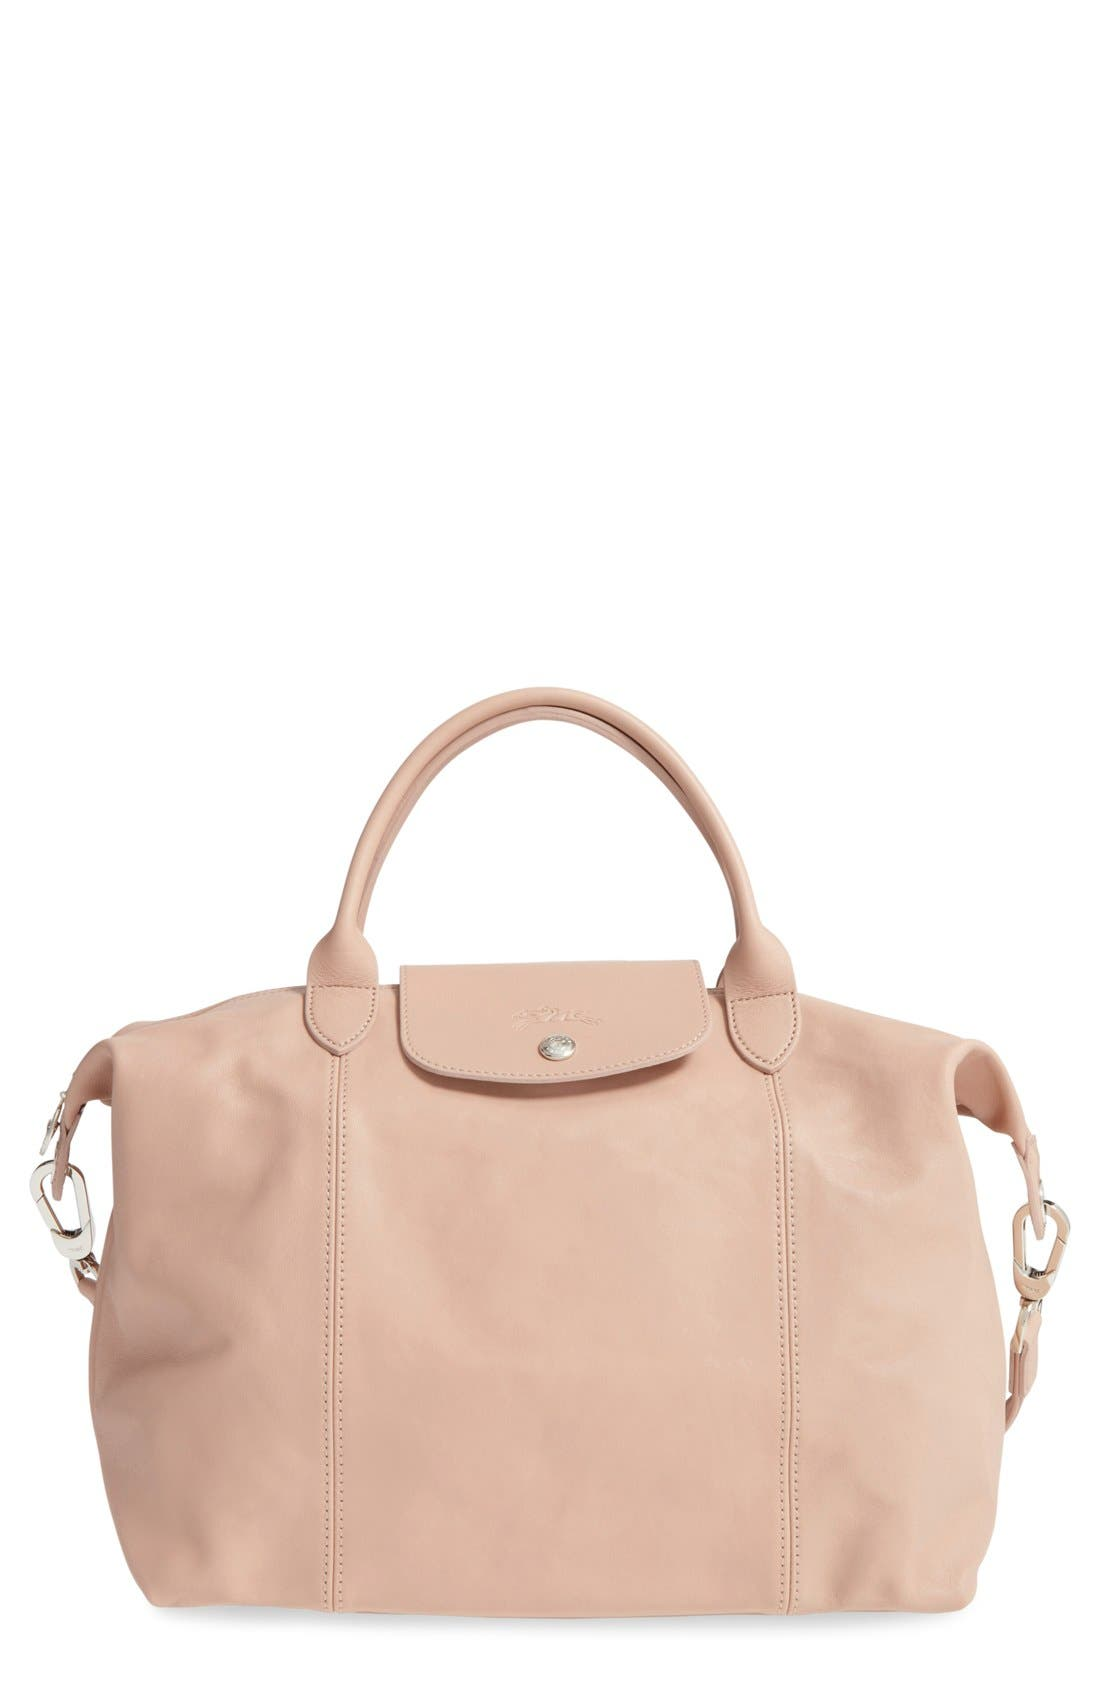 Medium 'Le Pliage Cuir' Leather Top Handle Tote,                             Main thumbnail 13, color,